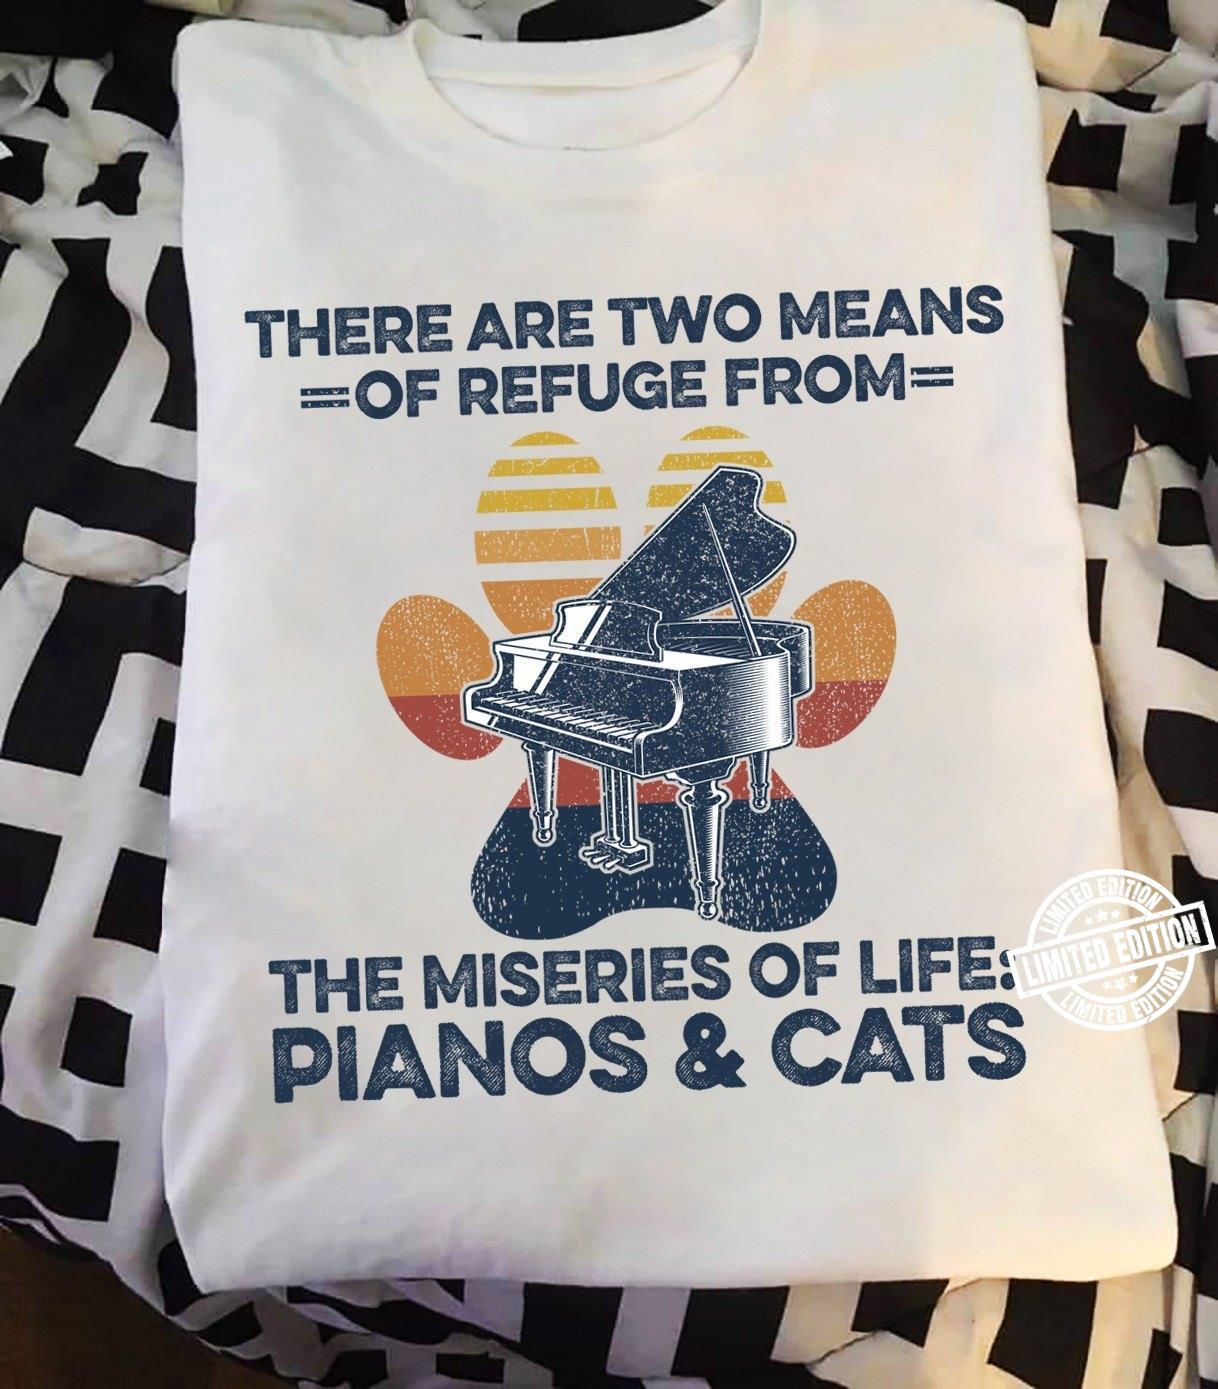 There are two means of refuge from the miseries of life pianos & cats shirt